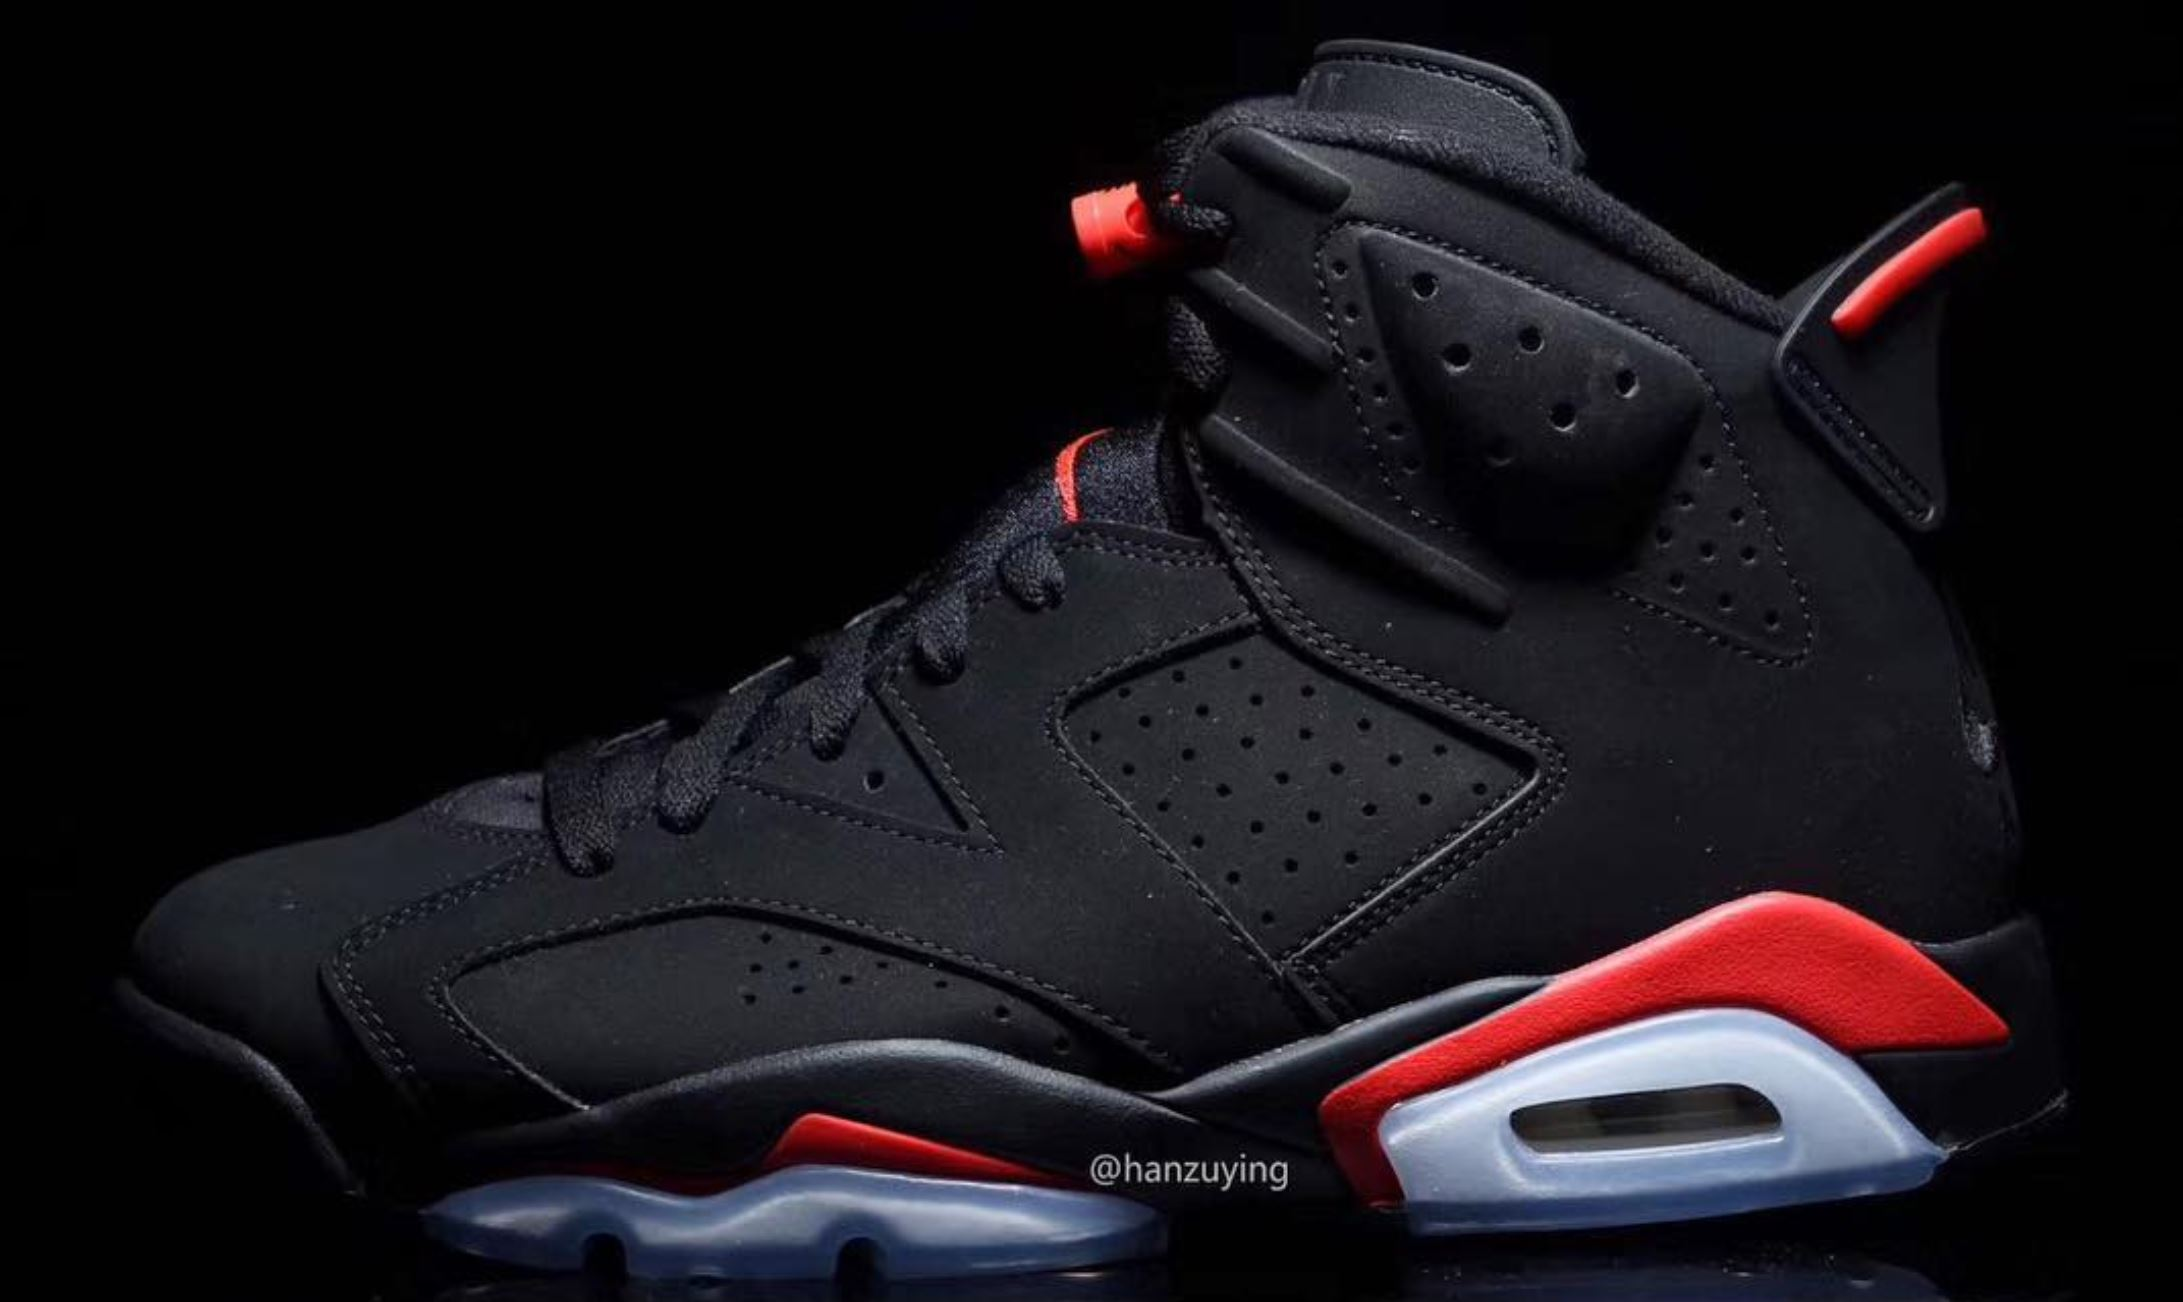 separation shoes 38ab4 2d252 The Air Jordan 6 'Black Infrared' to Release in February for ...